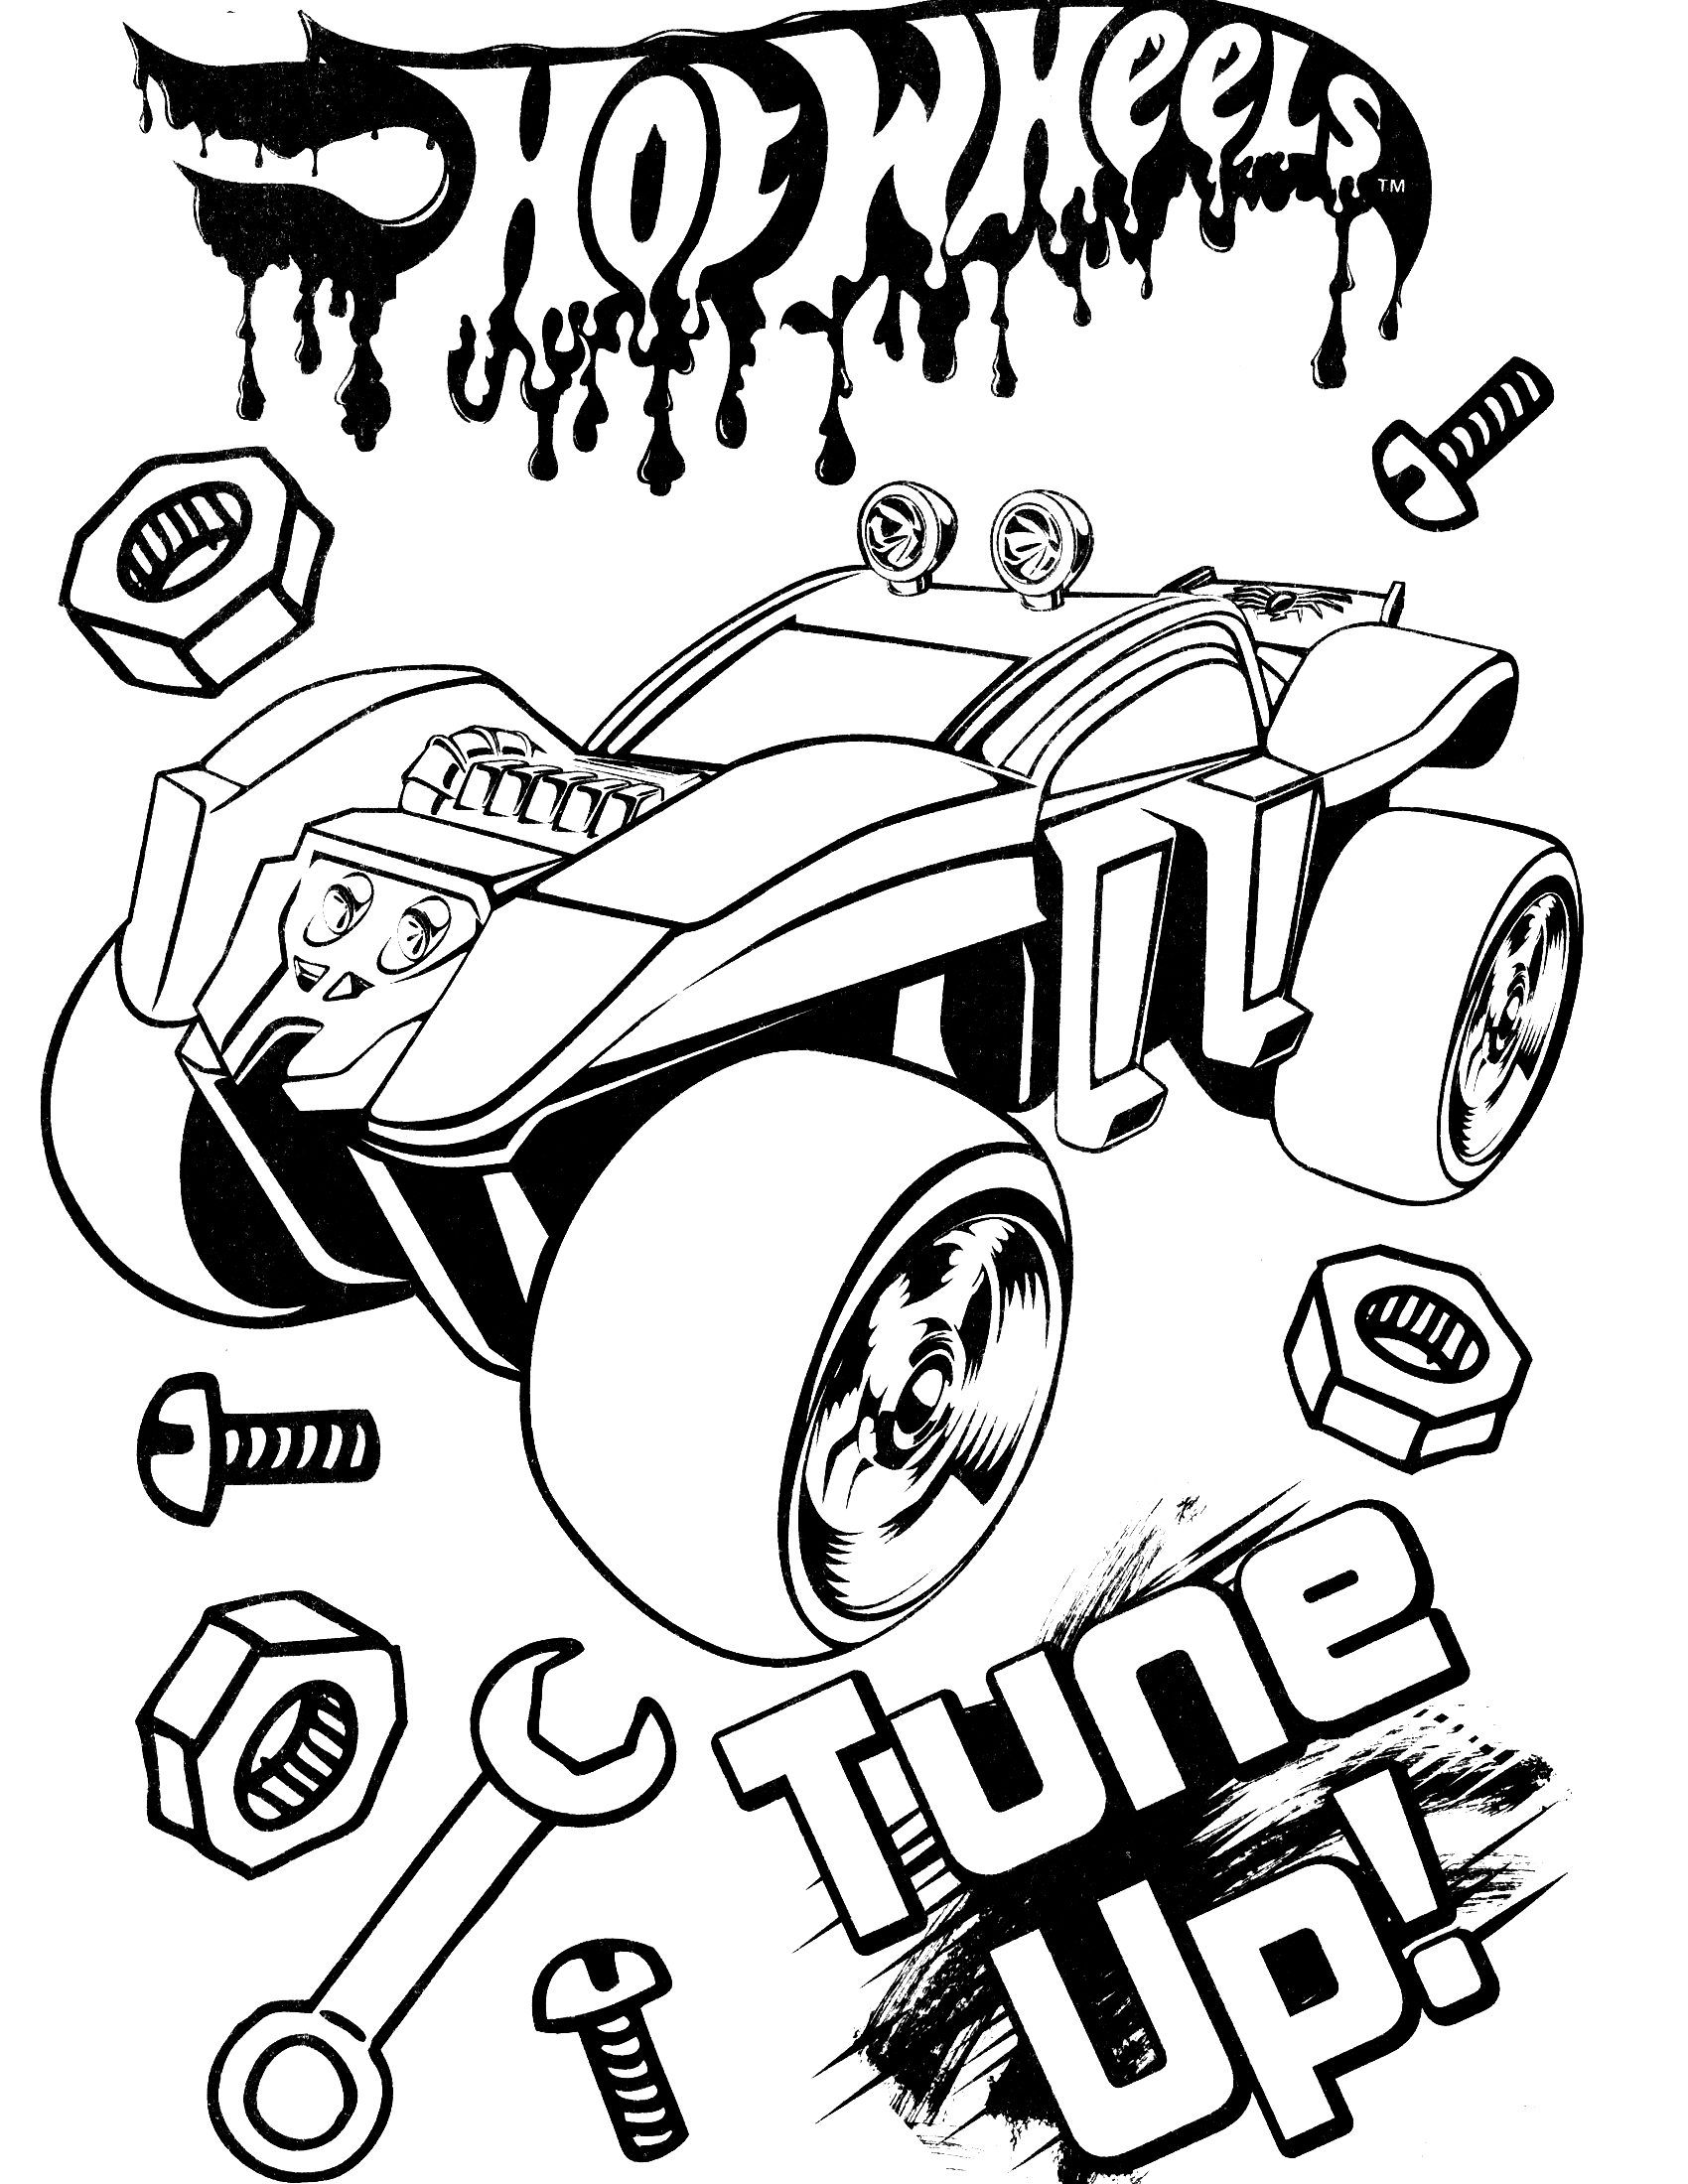 hot wheels images to print hot wheels coloring page cars coloring pages hot wheels wheels images to hot print